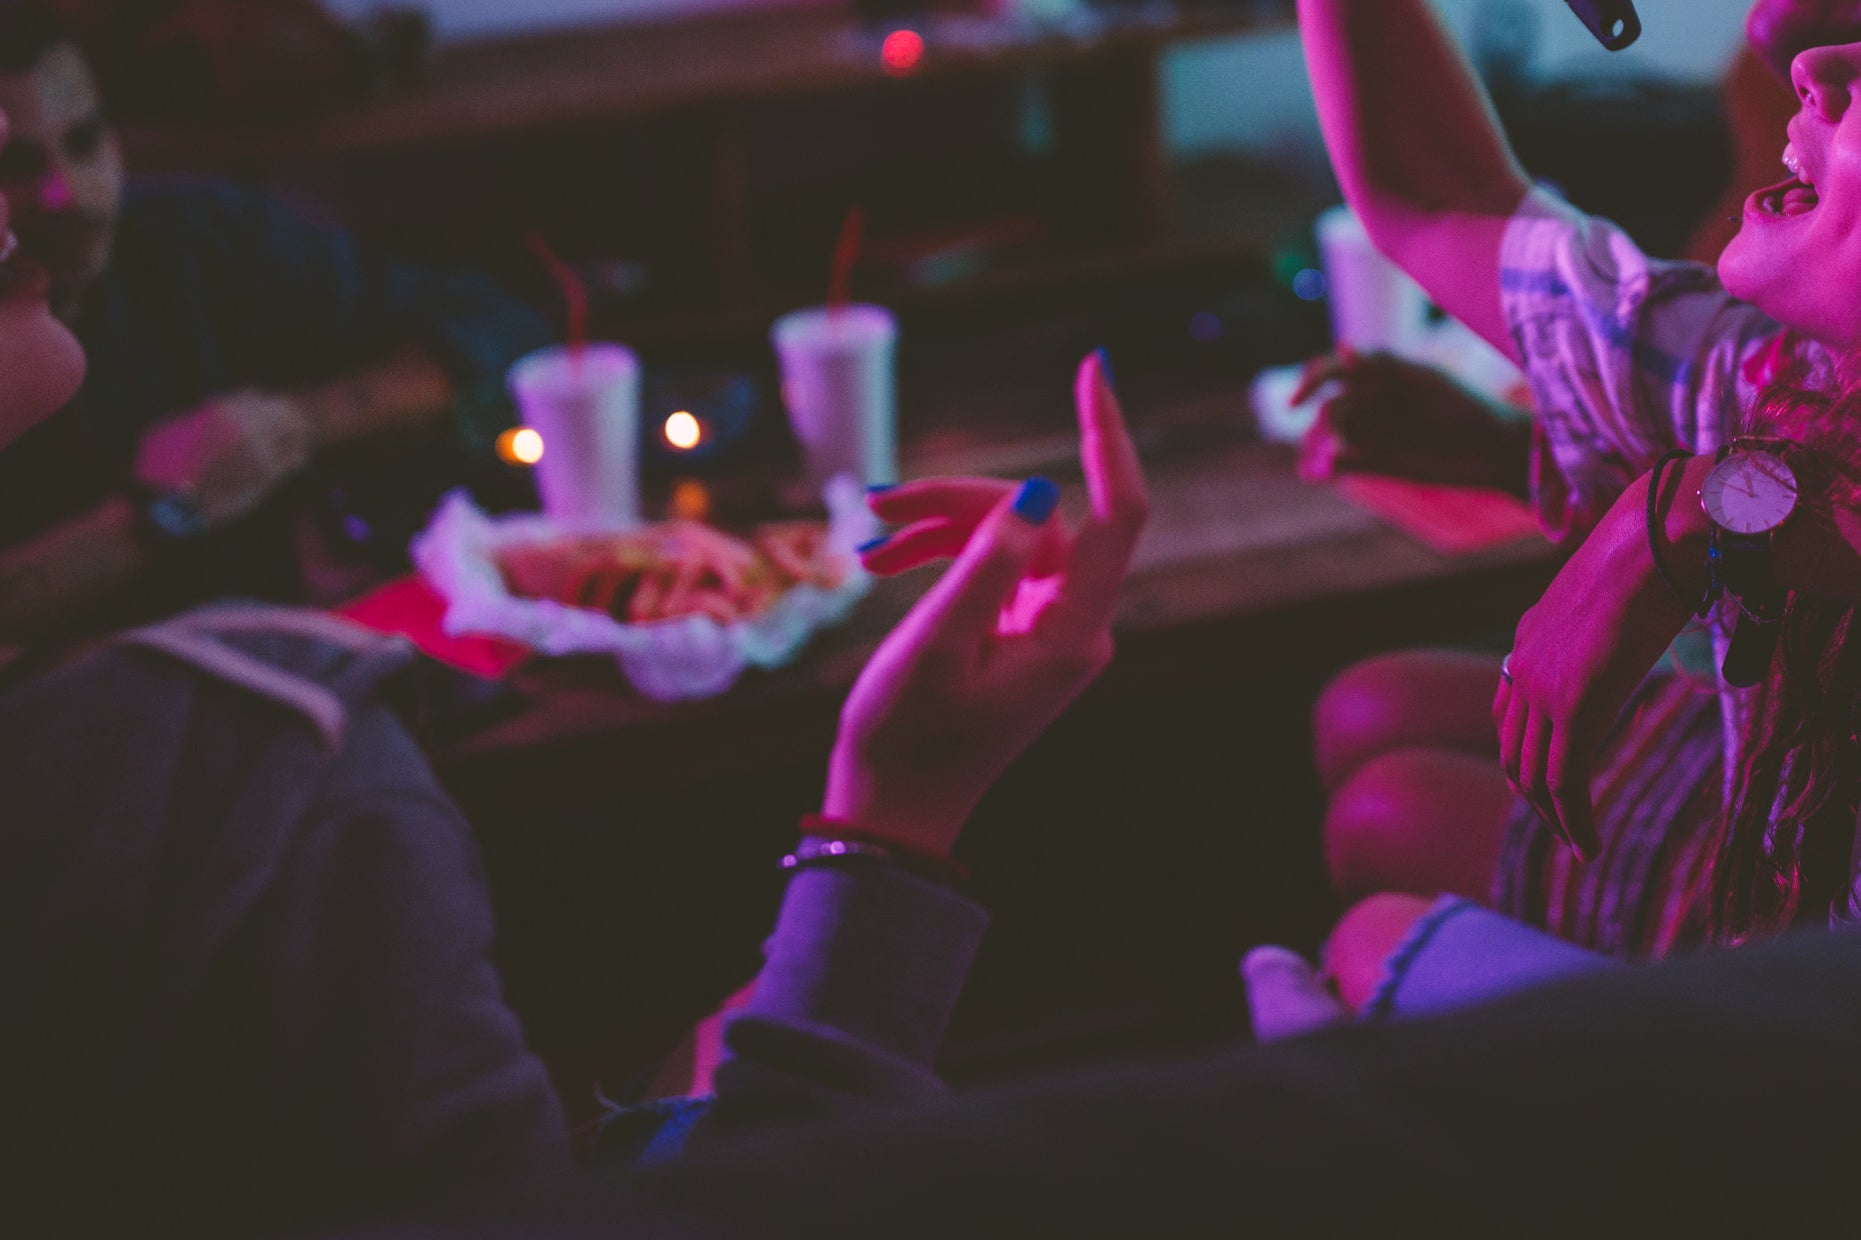 A group of people sitting on a couch at a party